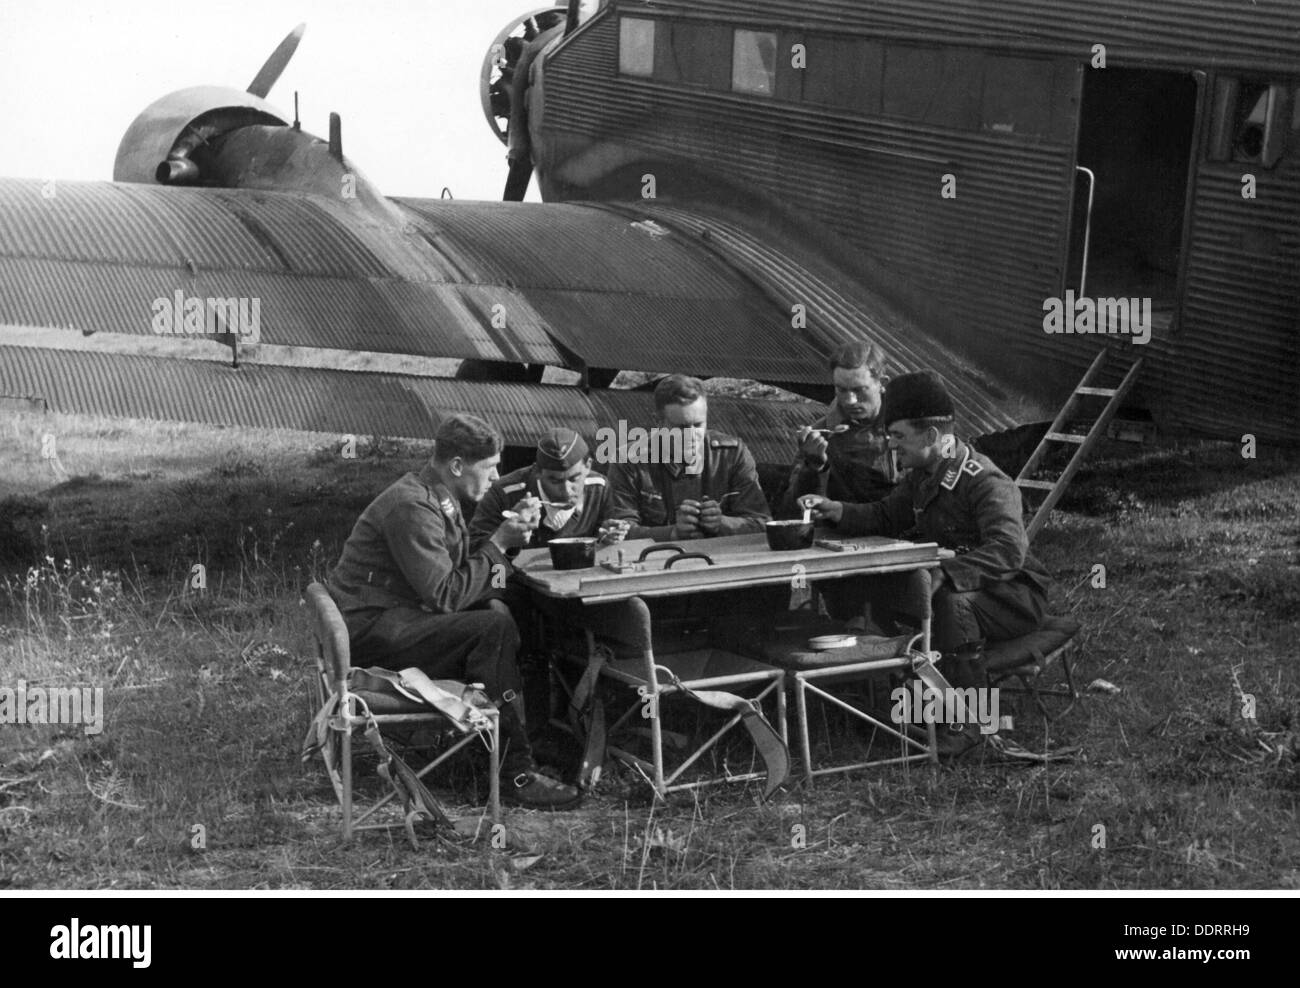 Second World War / WWII, Greece, German war correspondents of 3rd Air Force War Correspondent Company, during dinner besides an transport aircraft Junkers Ju 52, near Salonika, April 1941, journalist, journalists, propaganda company, soldiers, soldier, people, men, man, aeroplane, airplane, airplanes, aeroplanes, airfields, airfield, airstrip, strip, airstrips, strips, Luftwaffe (German Air Force), meal, meals, mess kit, seats, airline seat, the Balkans, Balkans campaign, communications zone, back area, rear echelon, Georg Schödl, German Reich, Third Reich, Mac, Additional-Rights-Clearences-NA - Stock Image